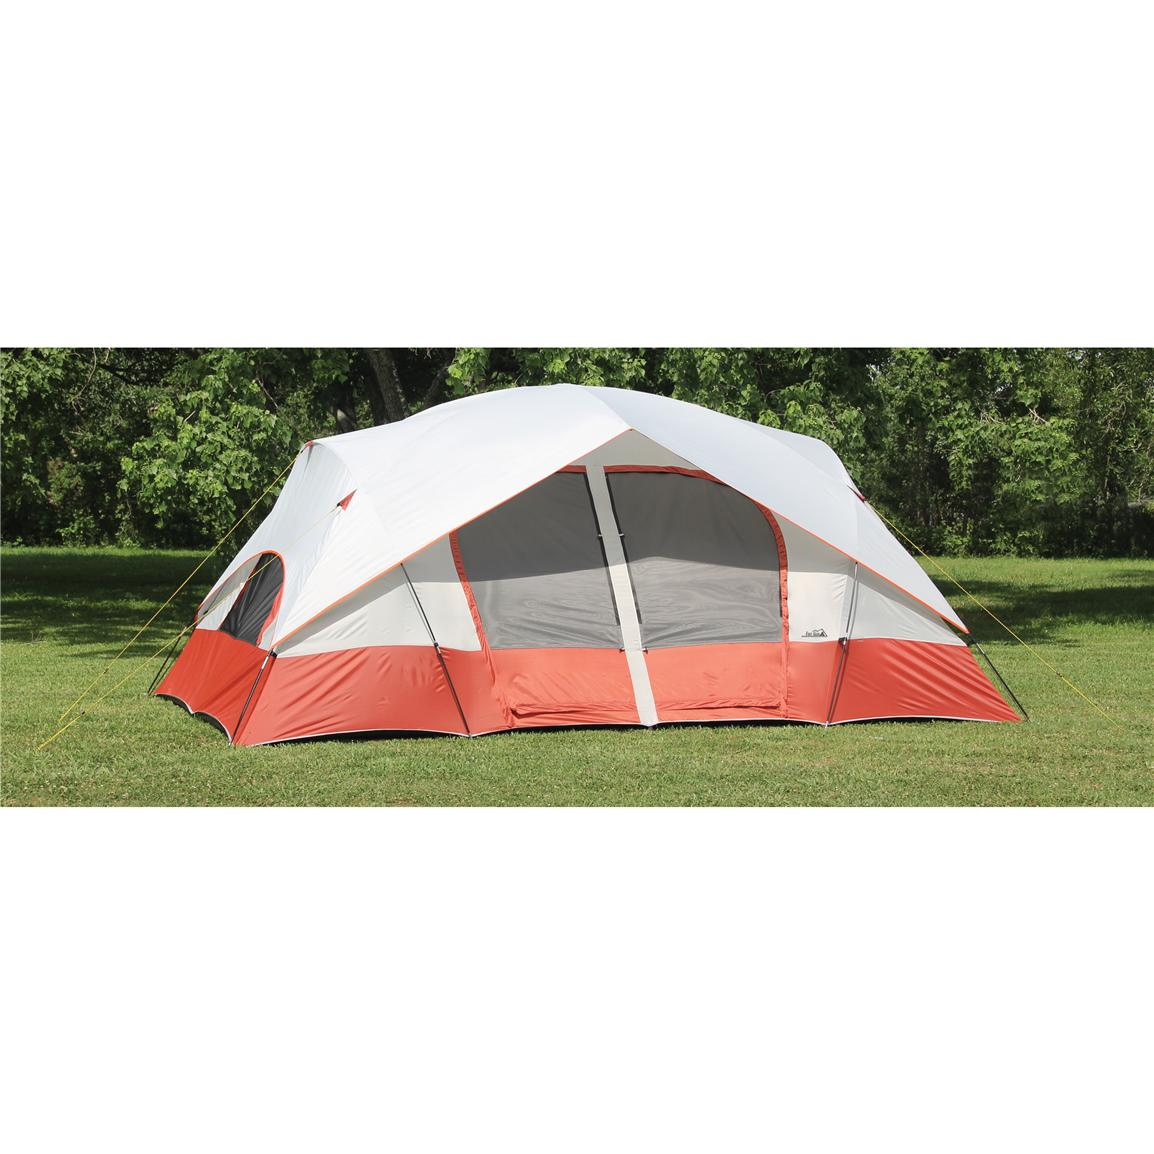 Texsport® Bull Canyon 2-room Cabin Dome Tent, Apricot / Gray / Firecracker Orange, With Rainfly